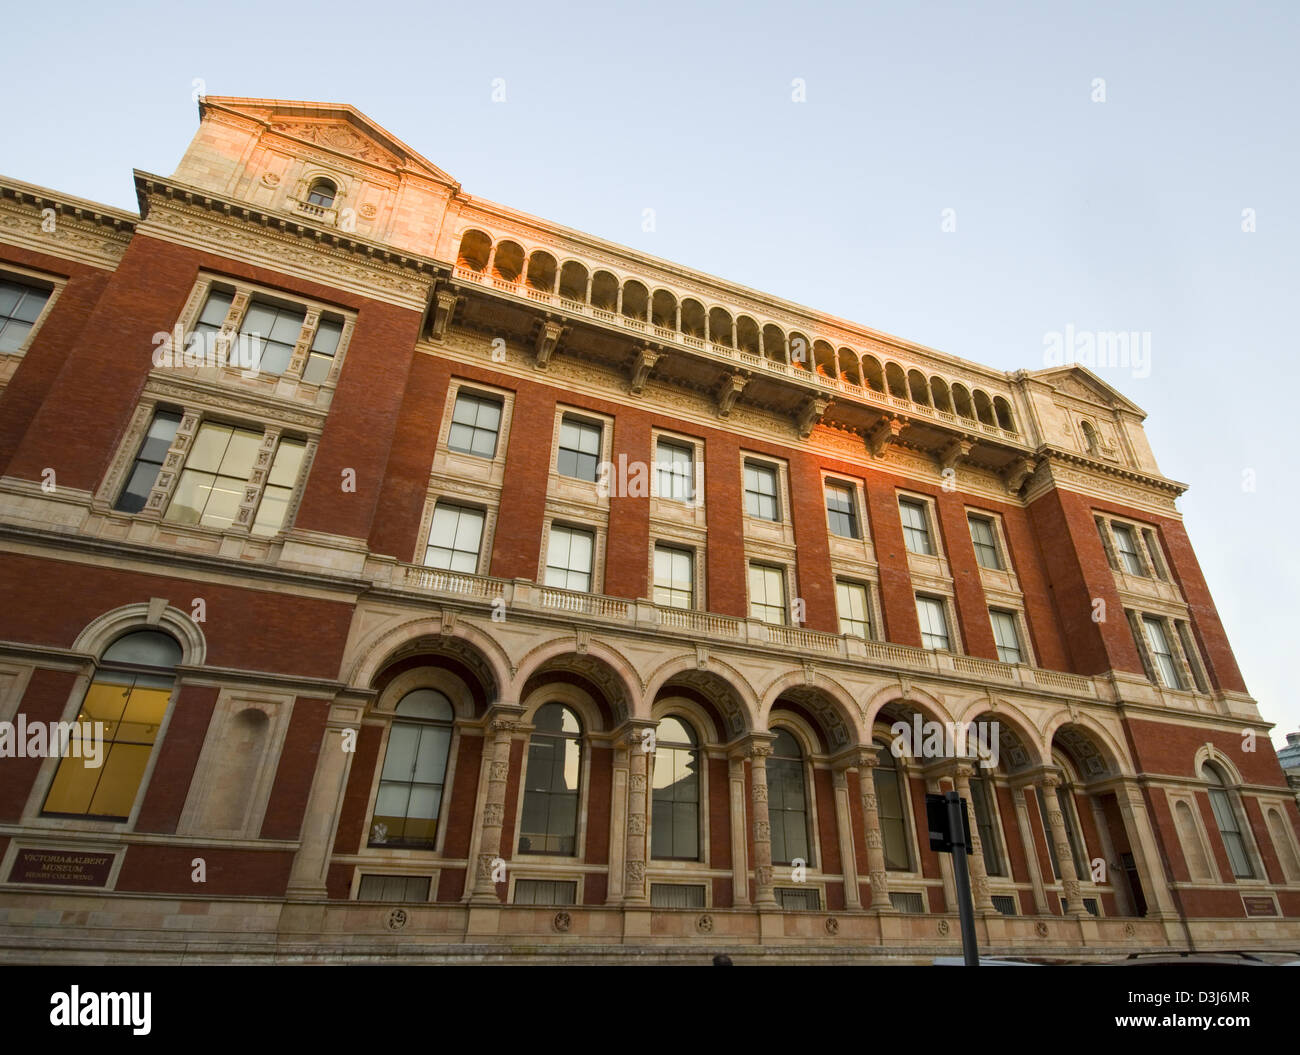 Victoria & Albert Museum - Henry Cole wing - Stock Image